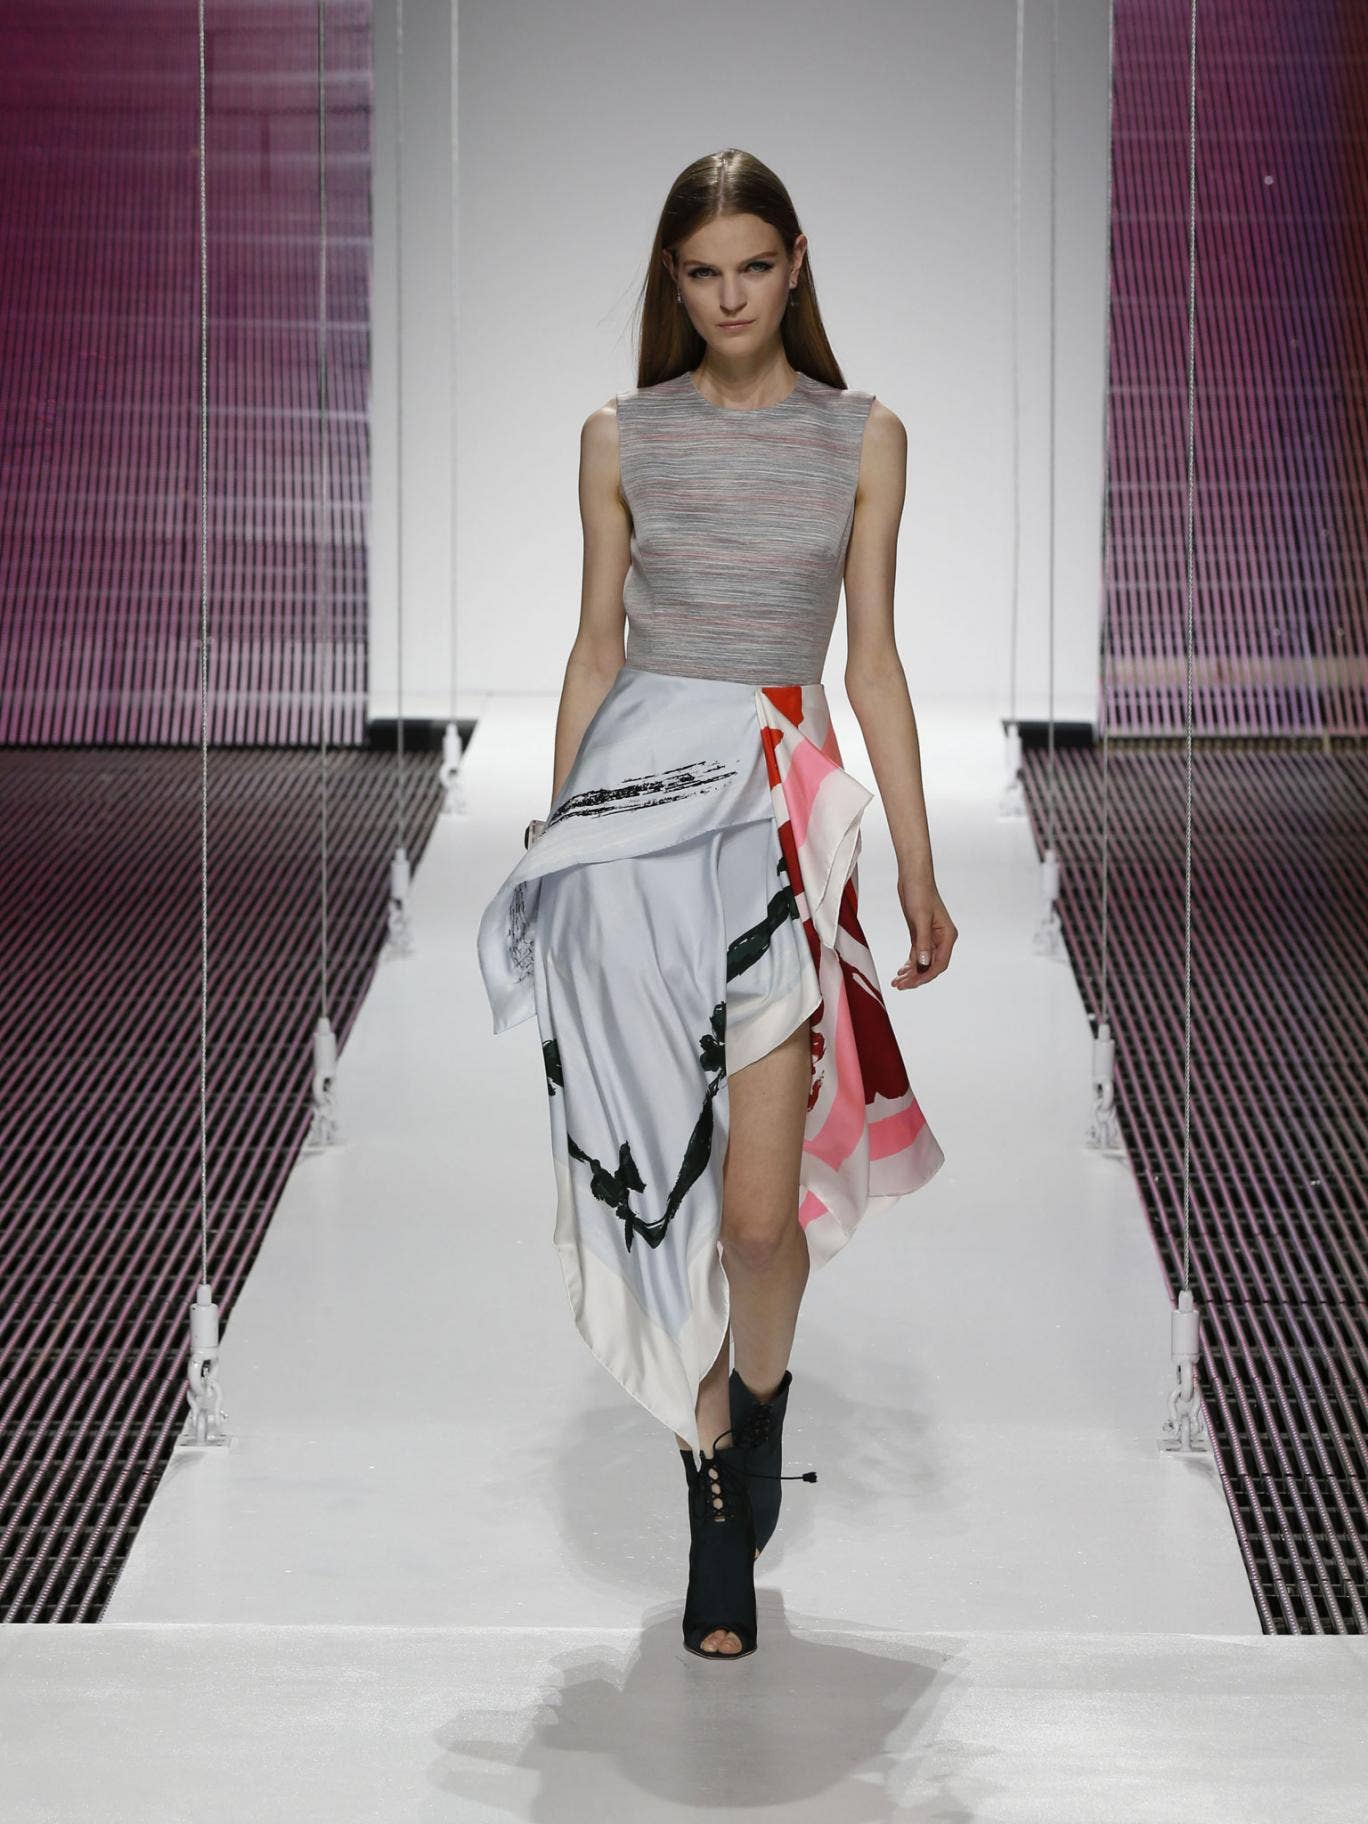 The Cruise 2015 collection of Christian Dior